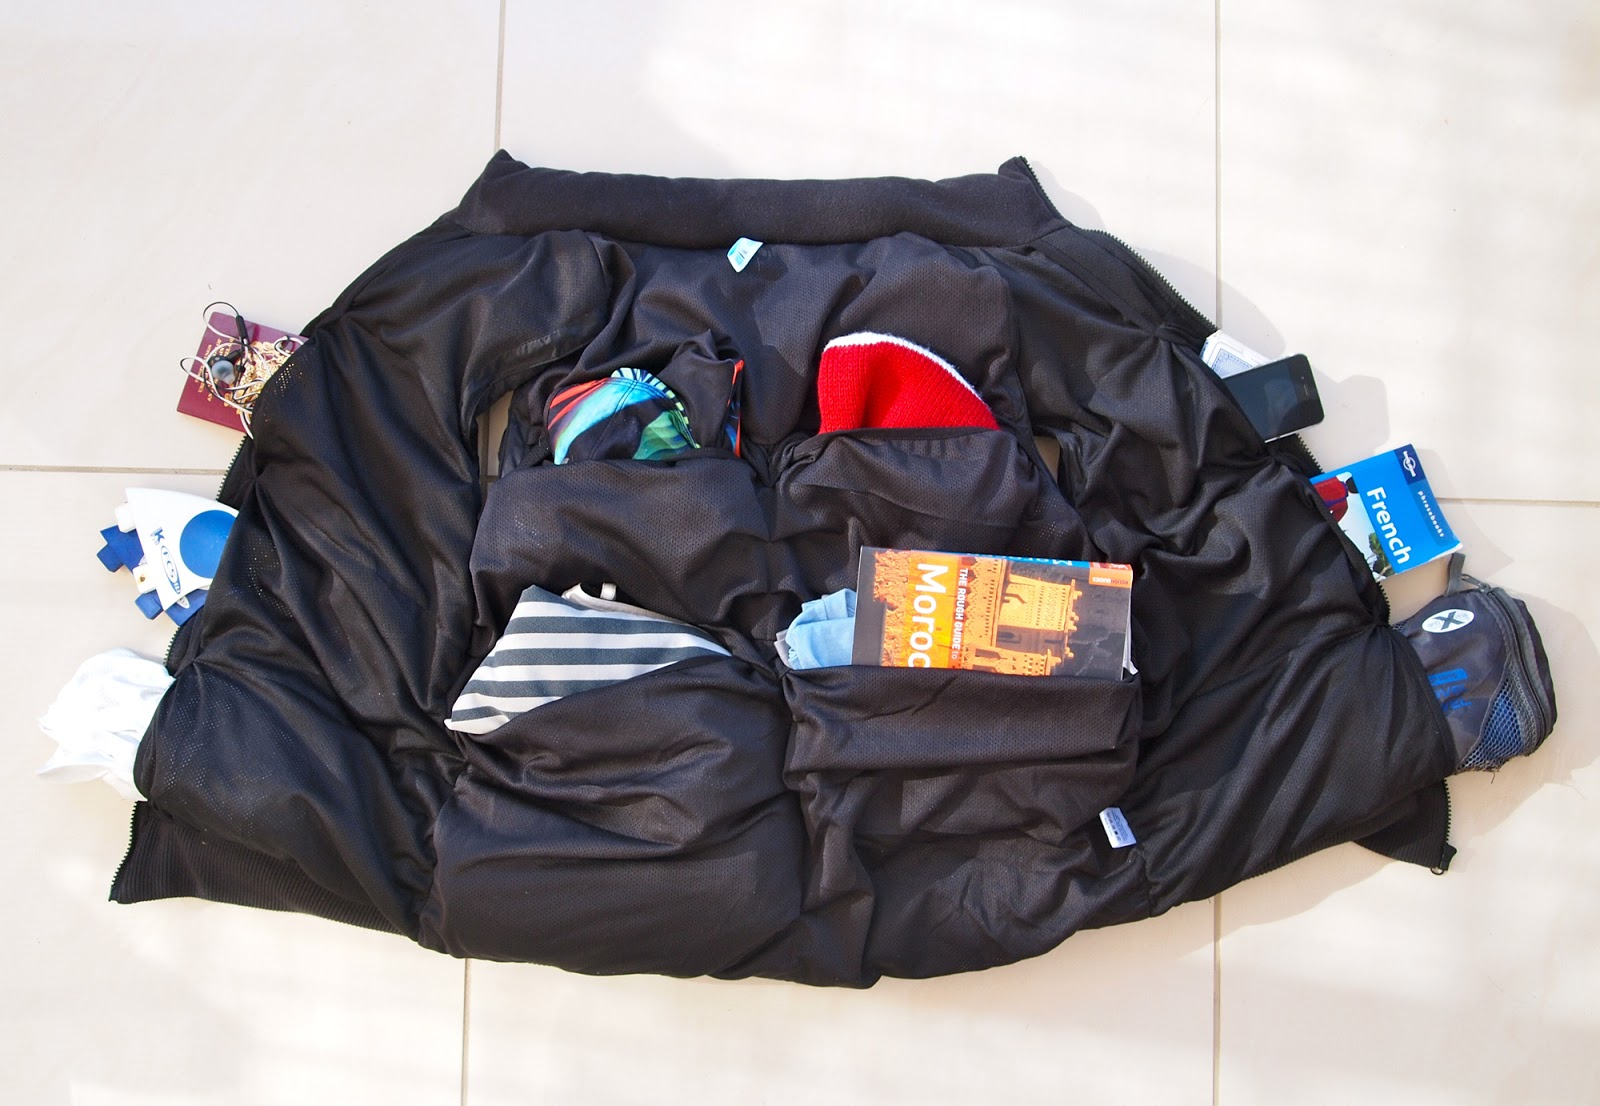 4 Wearable Luggage Ideas To Beat Excess Baggage Charges